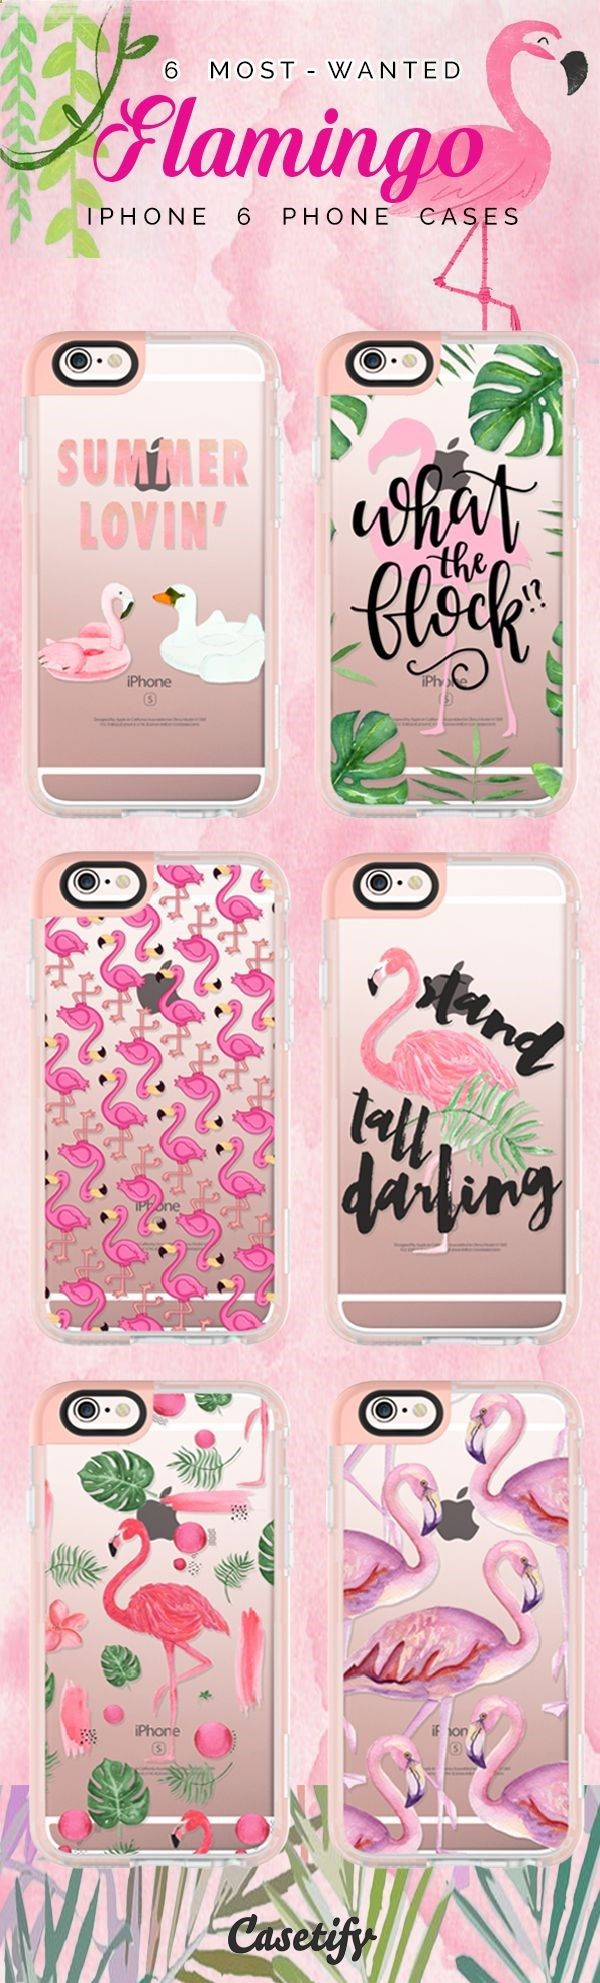 Phone Cases - Top 6 Flamingo iPhone 6 protective phone case designs | Click through to see more iPhone phone case idea. Let's flamingo! >>> www.casetify.com/... | Casetify